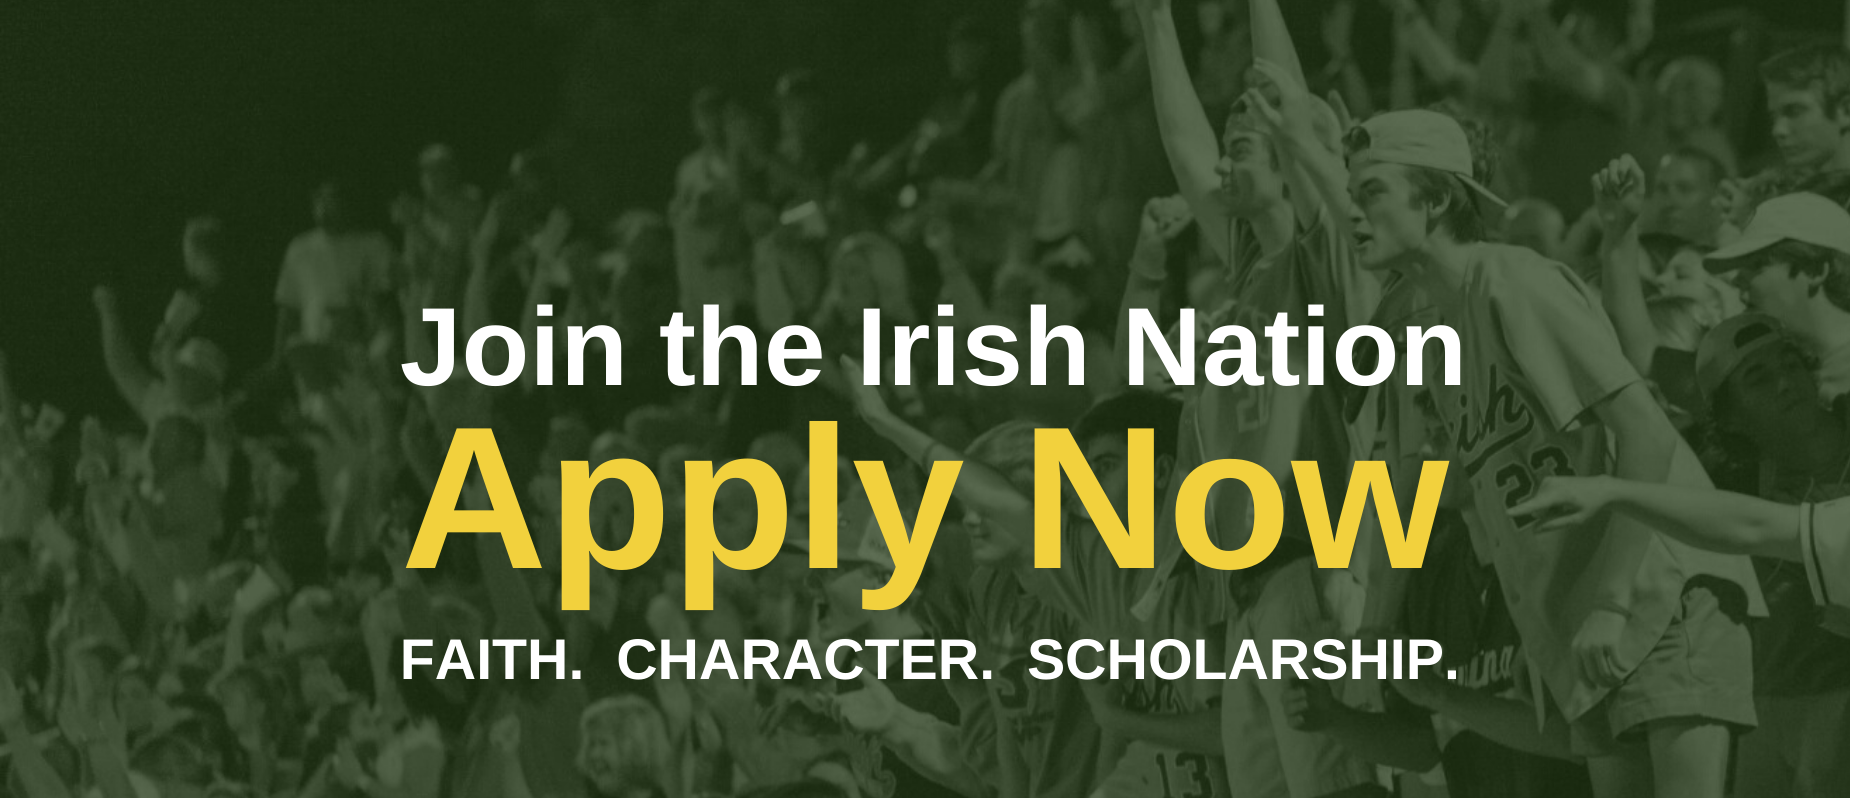 Join the Irish Nation.  Apply Now.